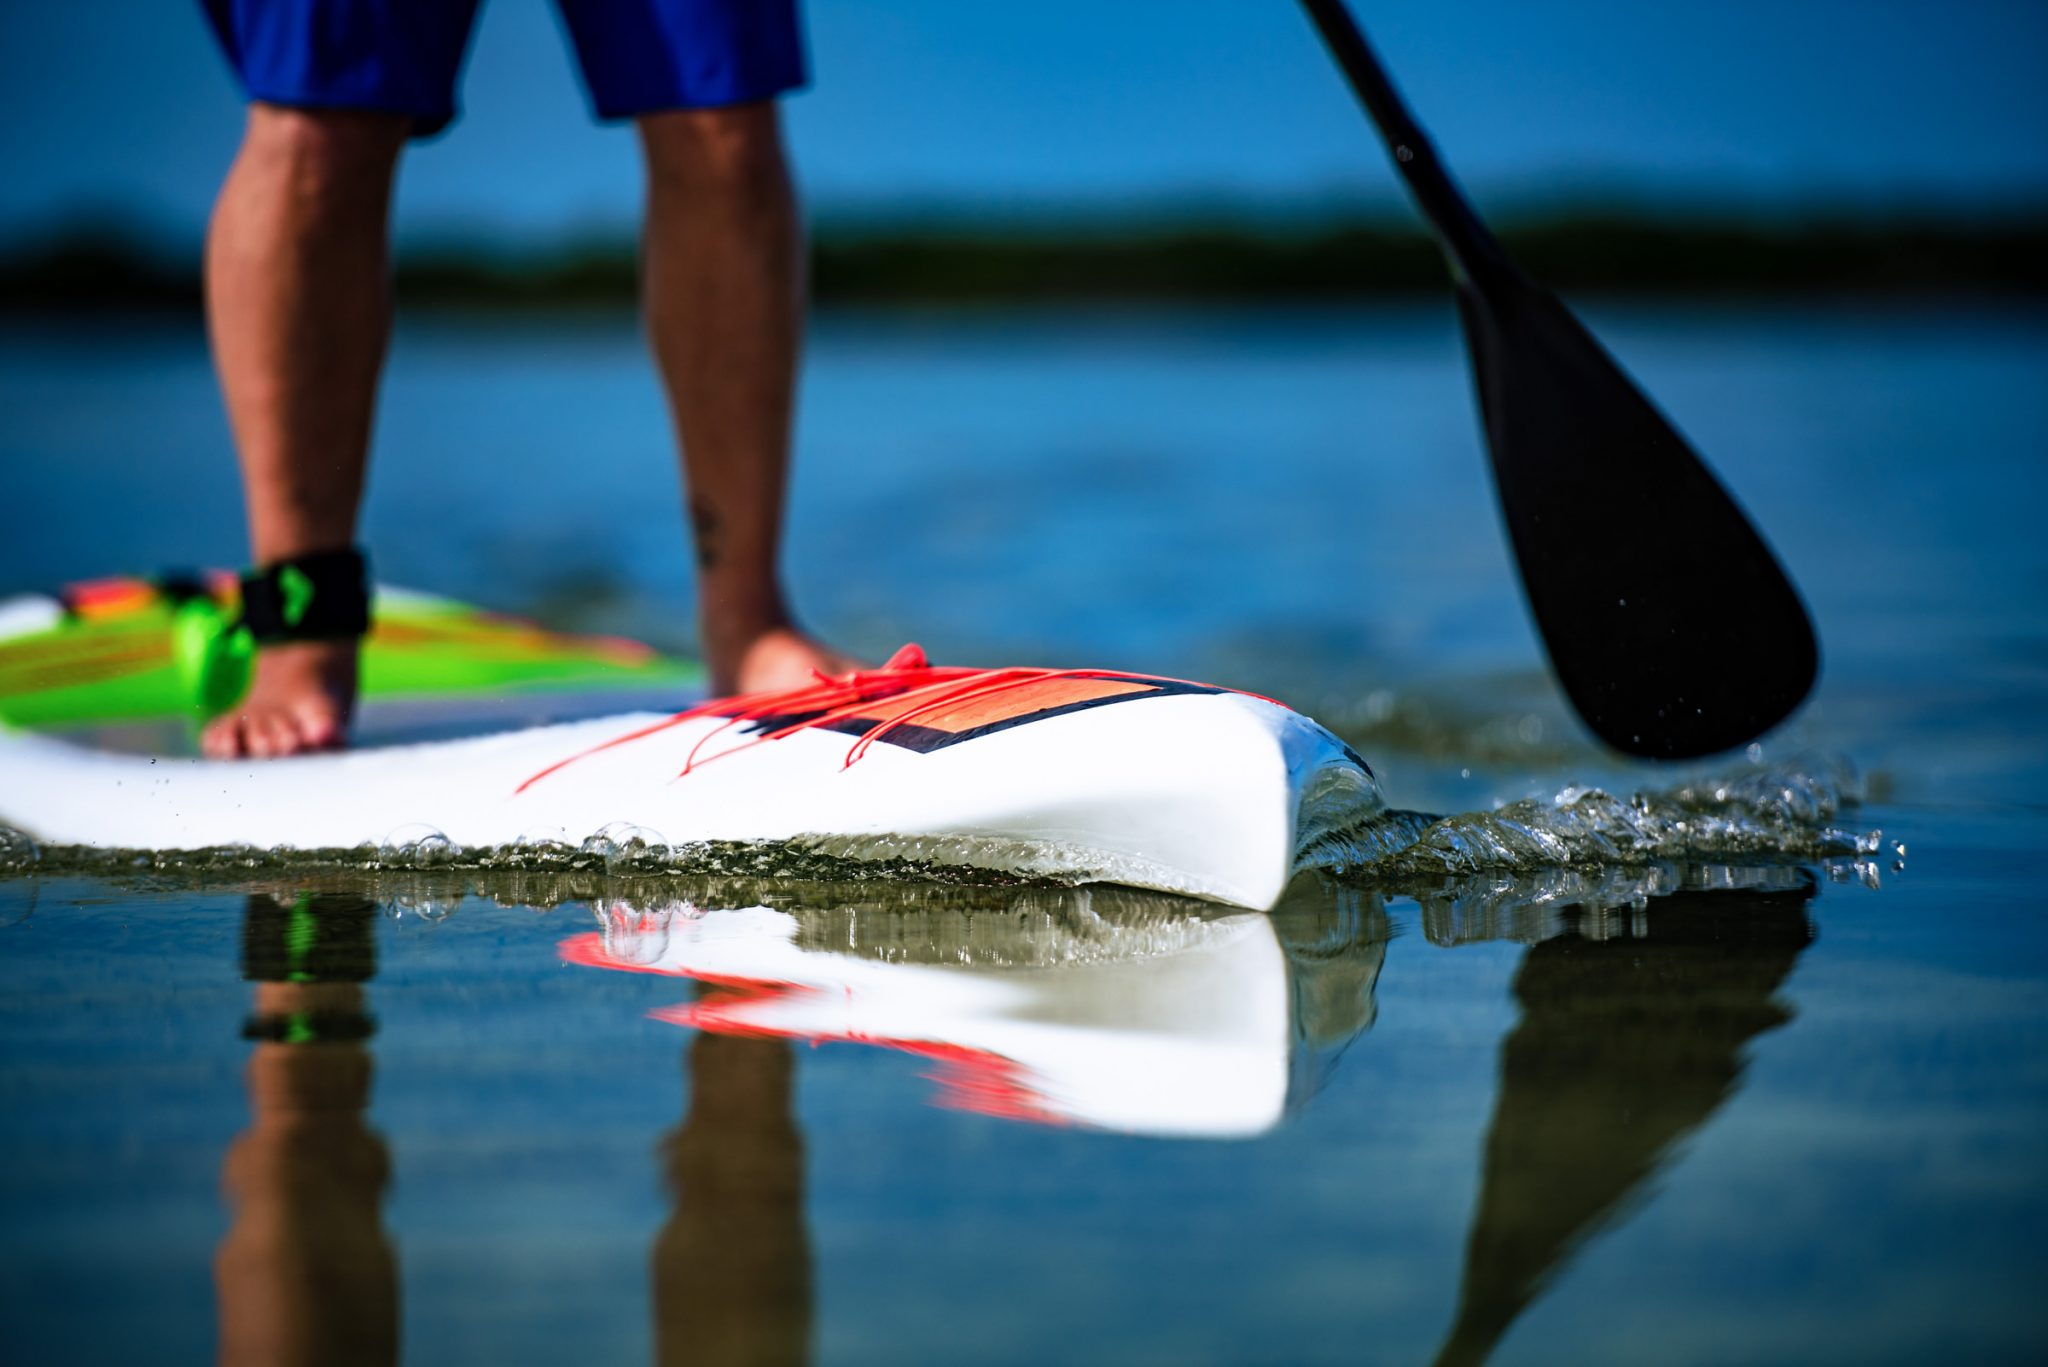 Lower half of man's body standing on a paddle board